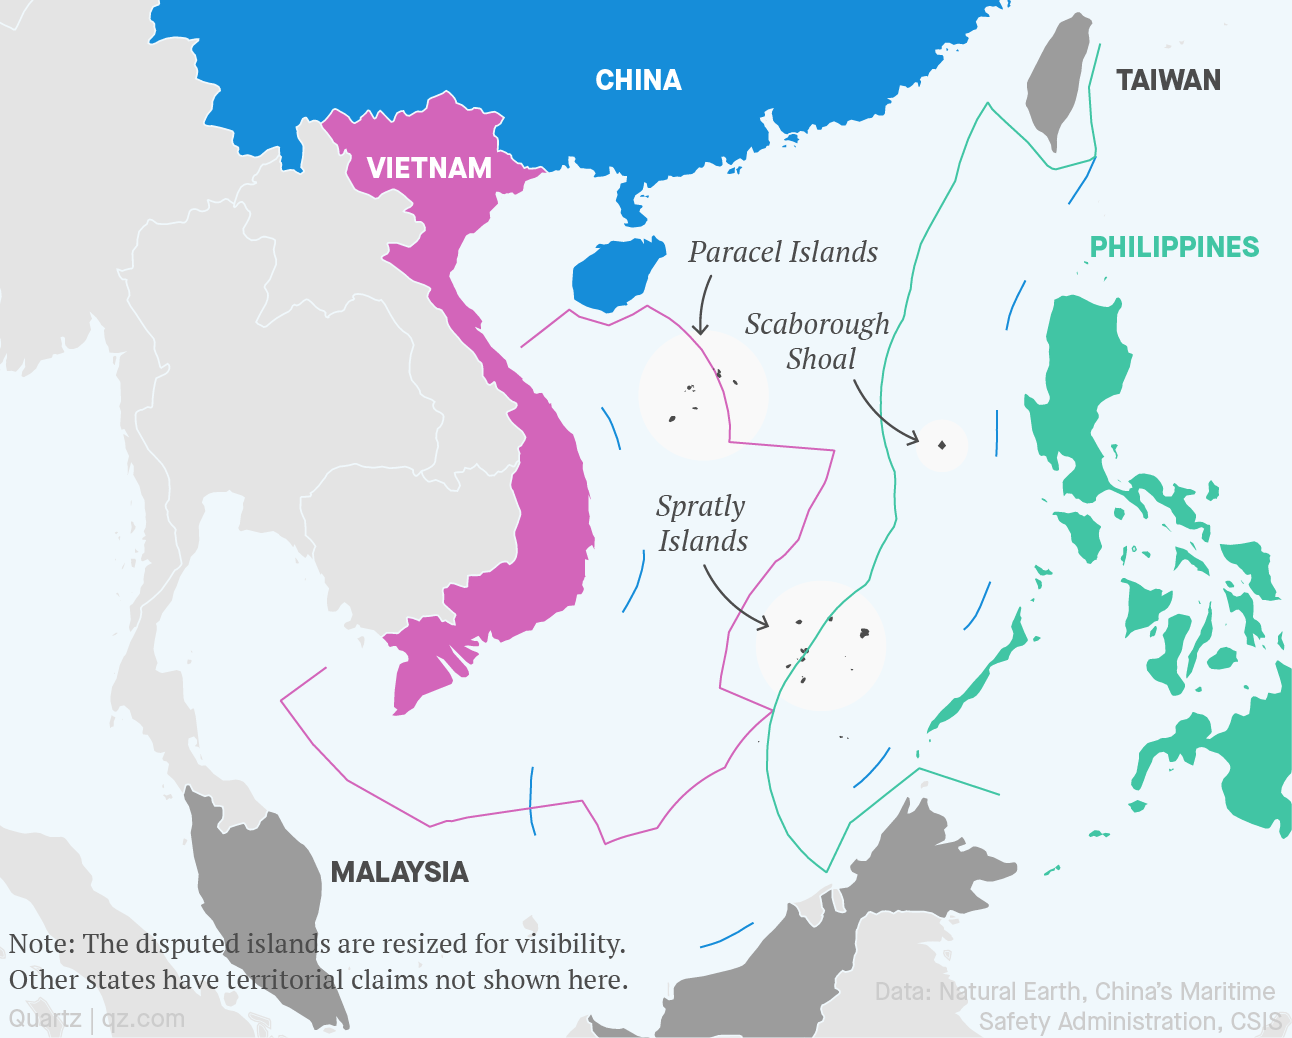 This map shows the disputed island claims between Vietnam, the Philippines, and China in the South China Sea. They intersect on the Spratly, Scarborough Shoal, and Paracel islands.